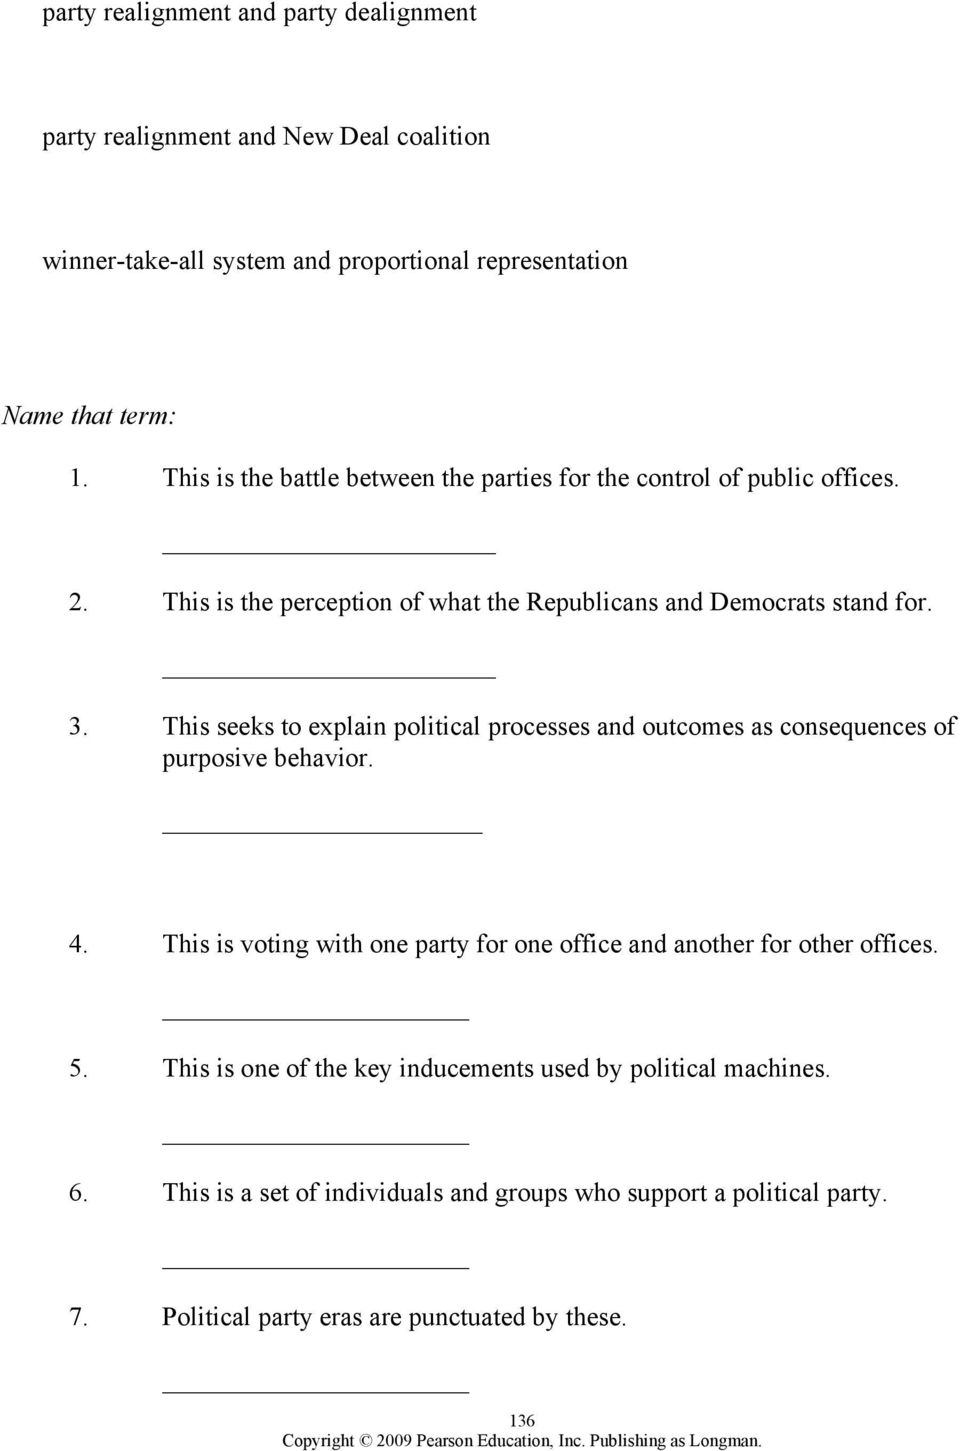 worksheet The Populist Movement The Value Of Third Parties Worksheet Answers chapter 8 political parties outline pdf this seeks to explain processes and outcomes as consequences of purposive behavior 4